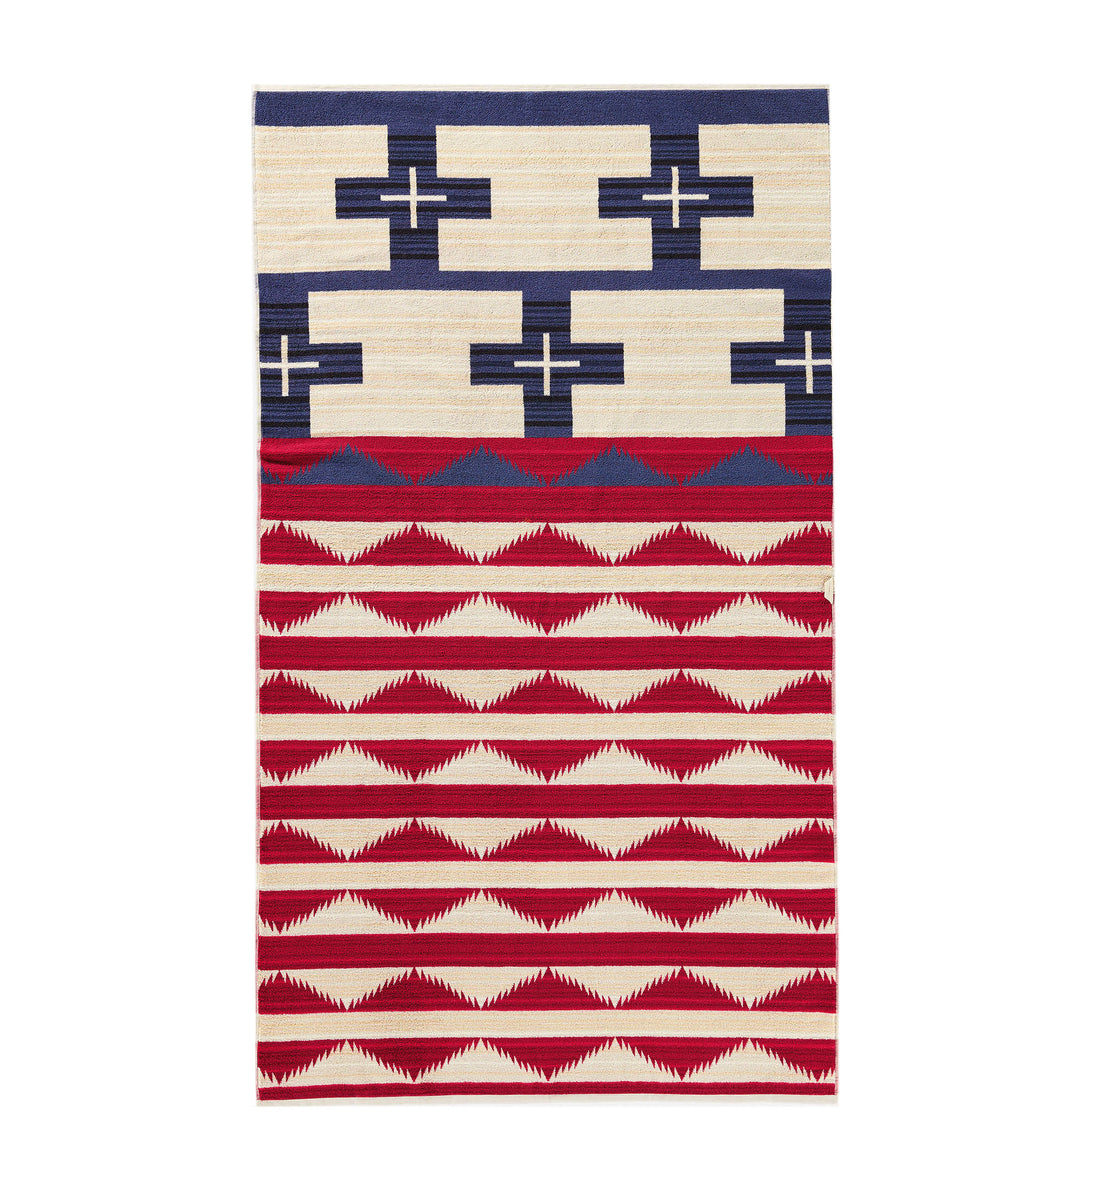 Pendleton Woolen Mills Oversized Jacquard Towel - Brave Star - Outdoor Living/Travel - Iron and Resin